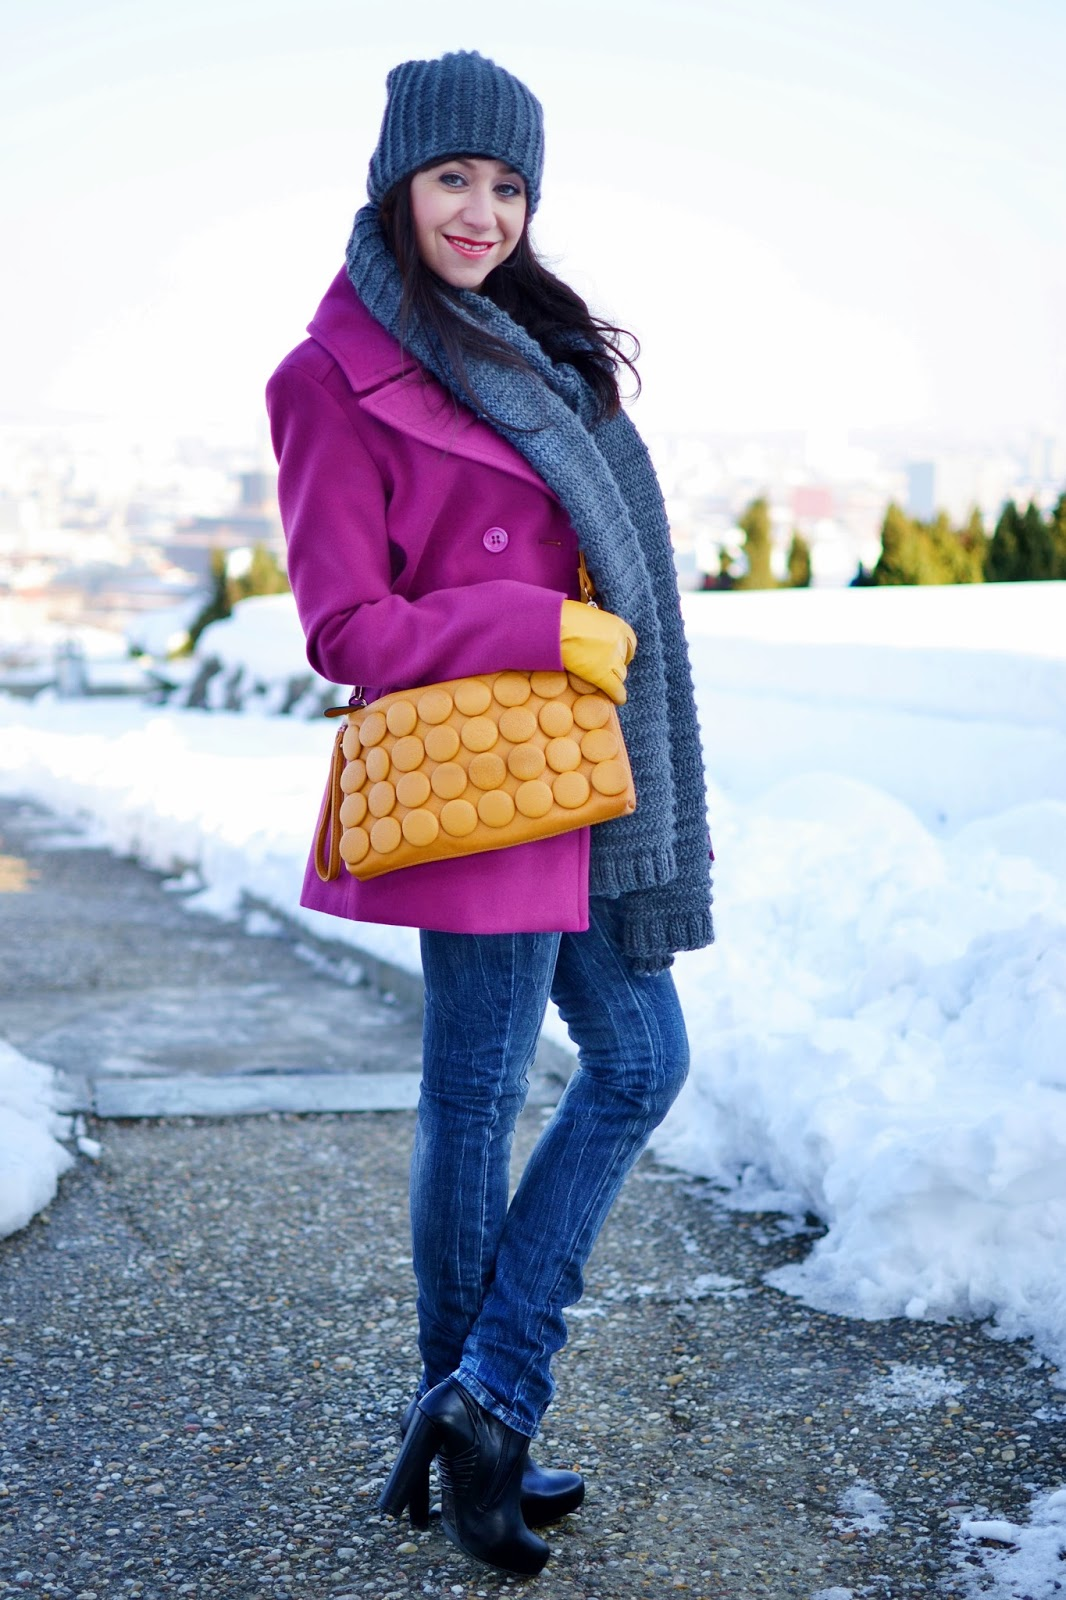 Seven ways how to wear clutch_Katharine-fashion is beautiful_Sivý šál_Sivá čiapka_Žlté kožené rukavice_Katarína Jakubčová_fashion blogger